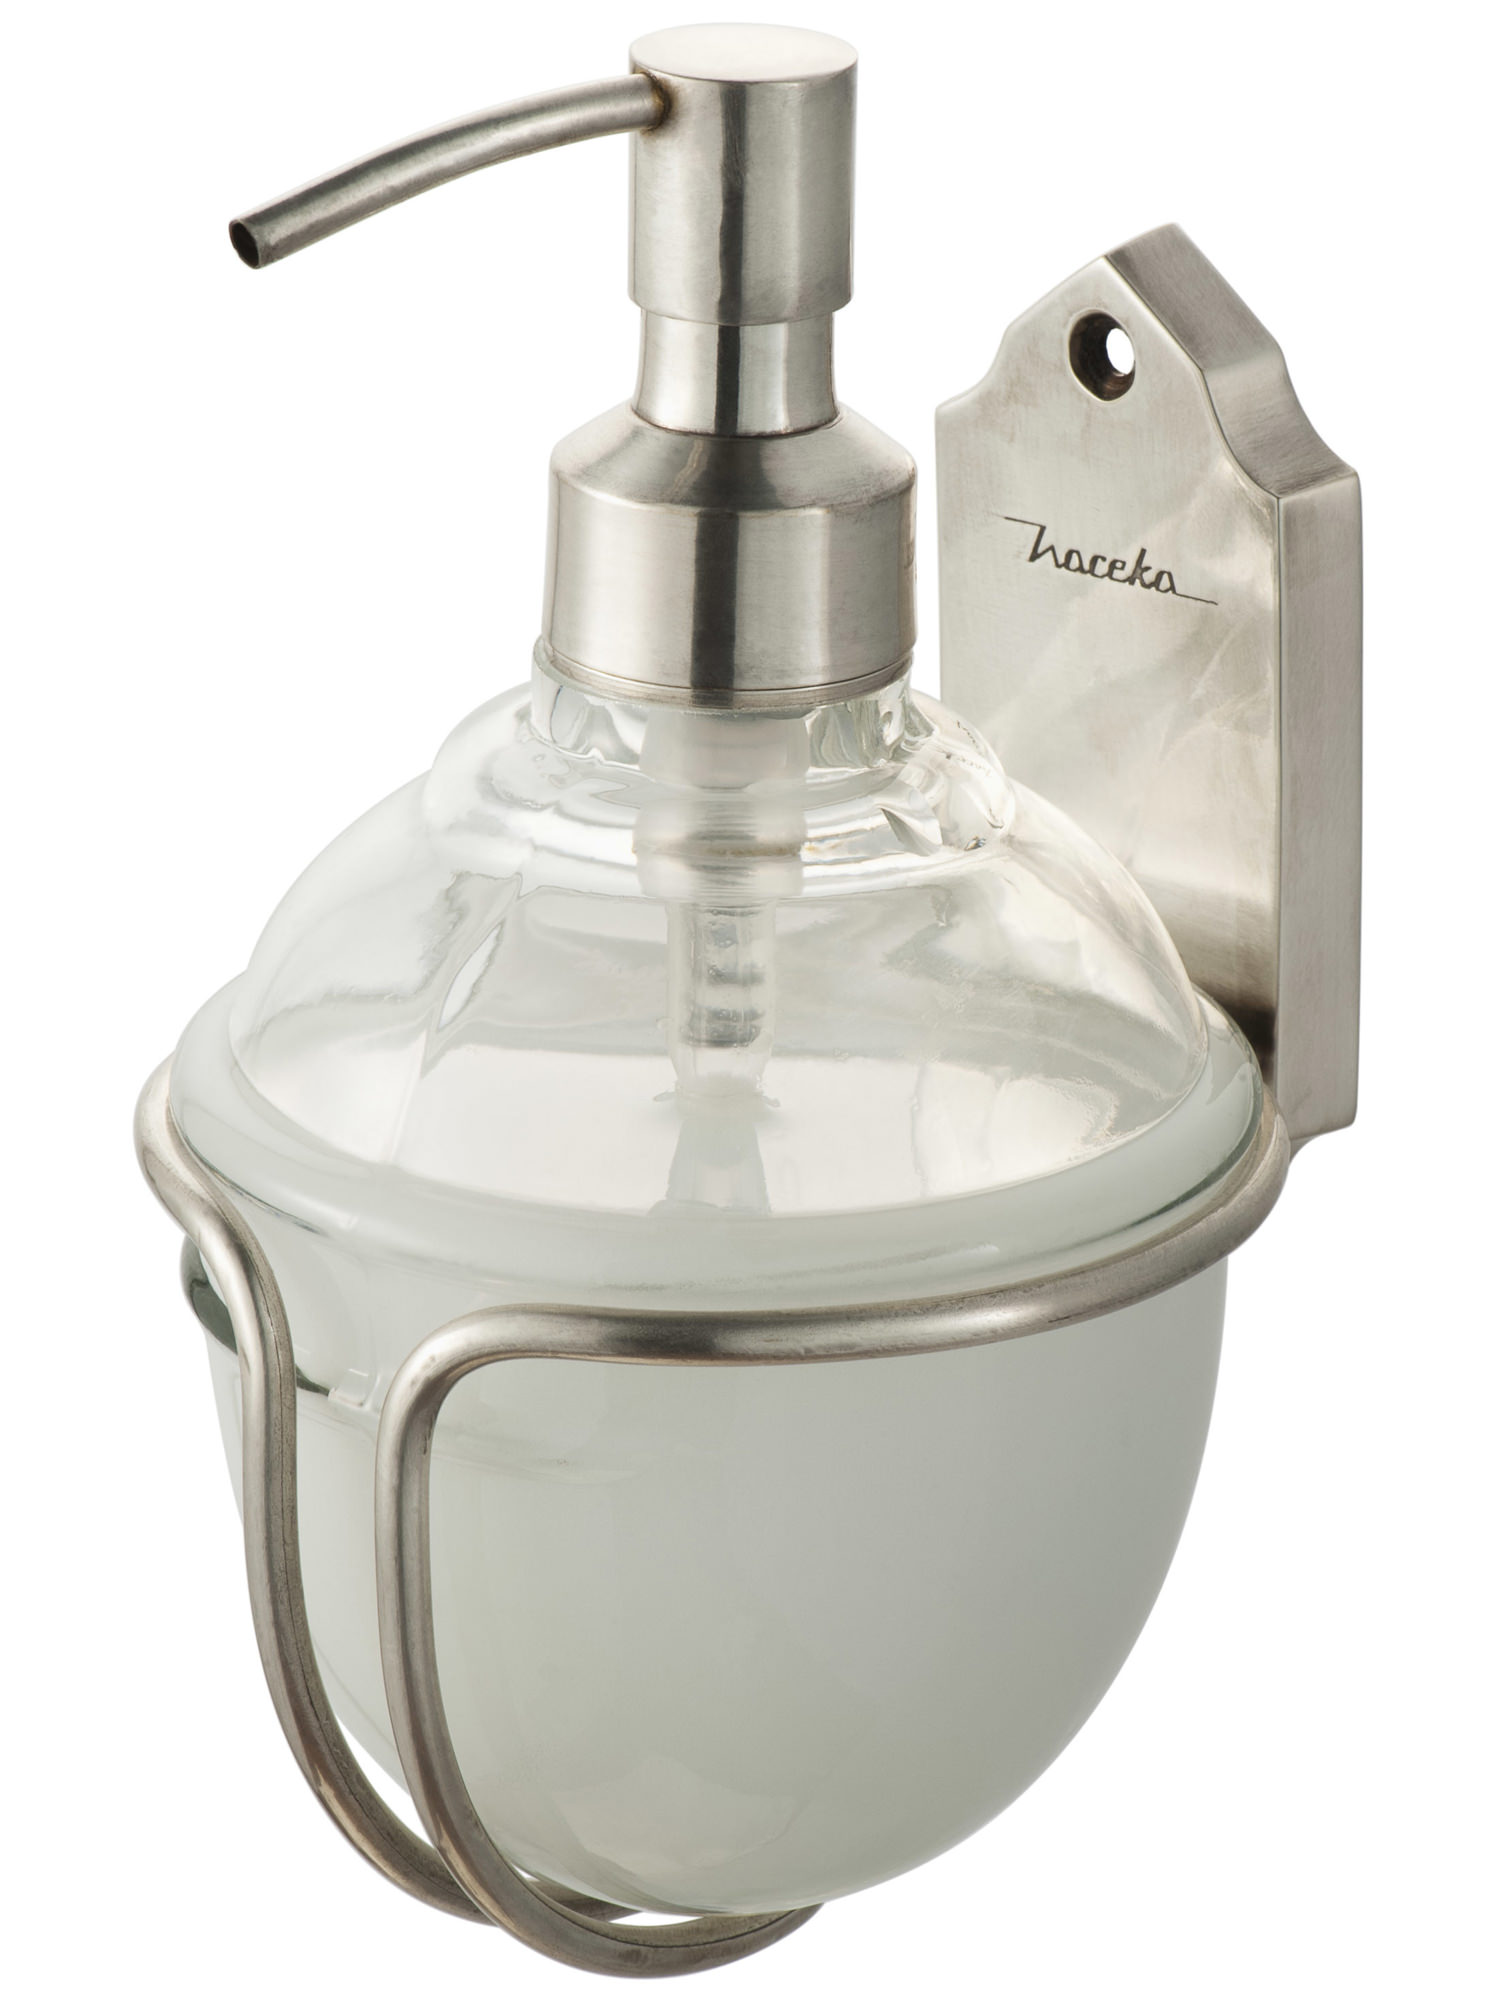 Haceka Vintage Soap Dispenser